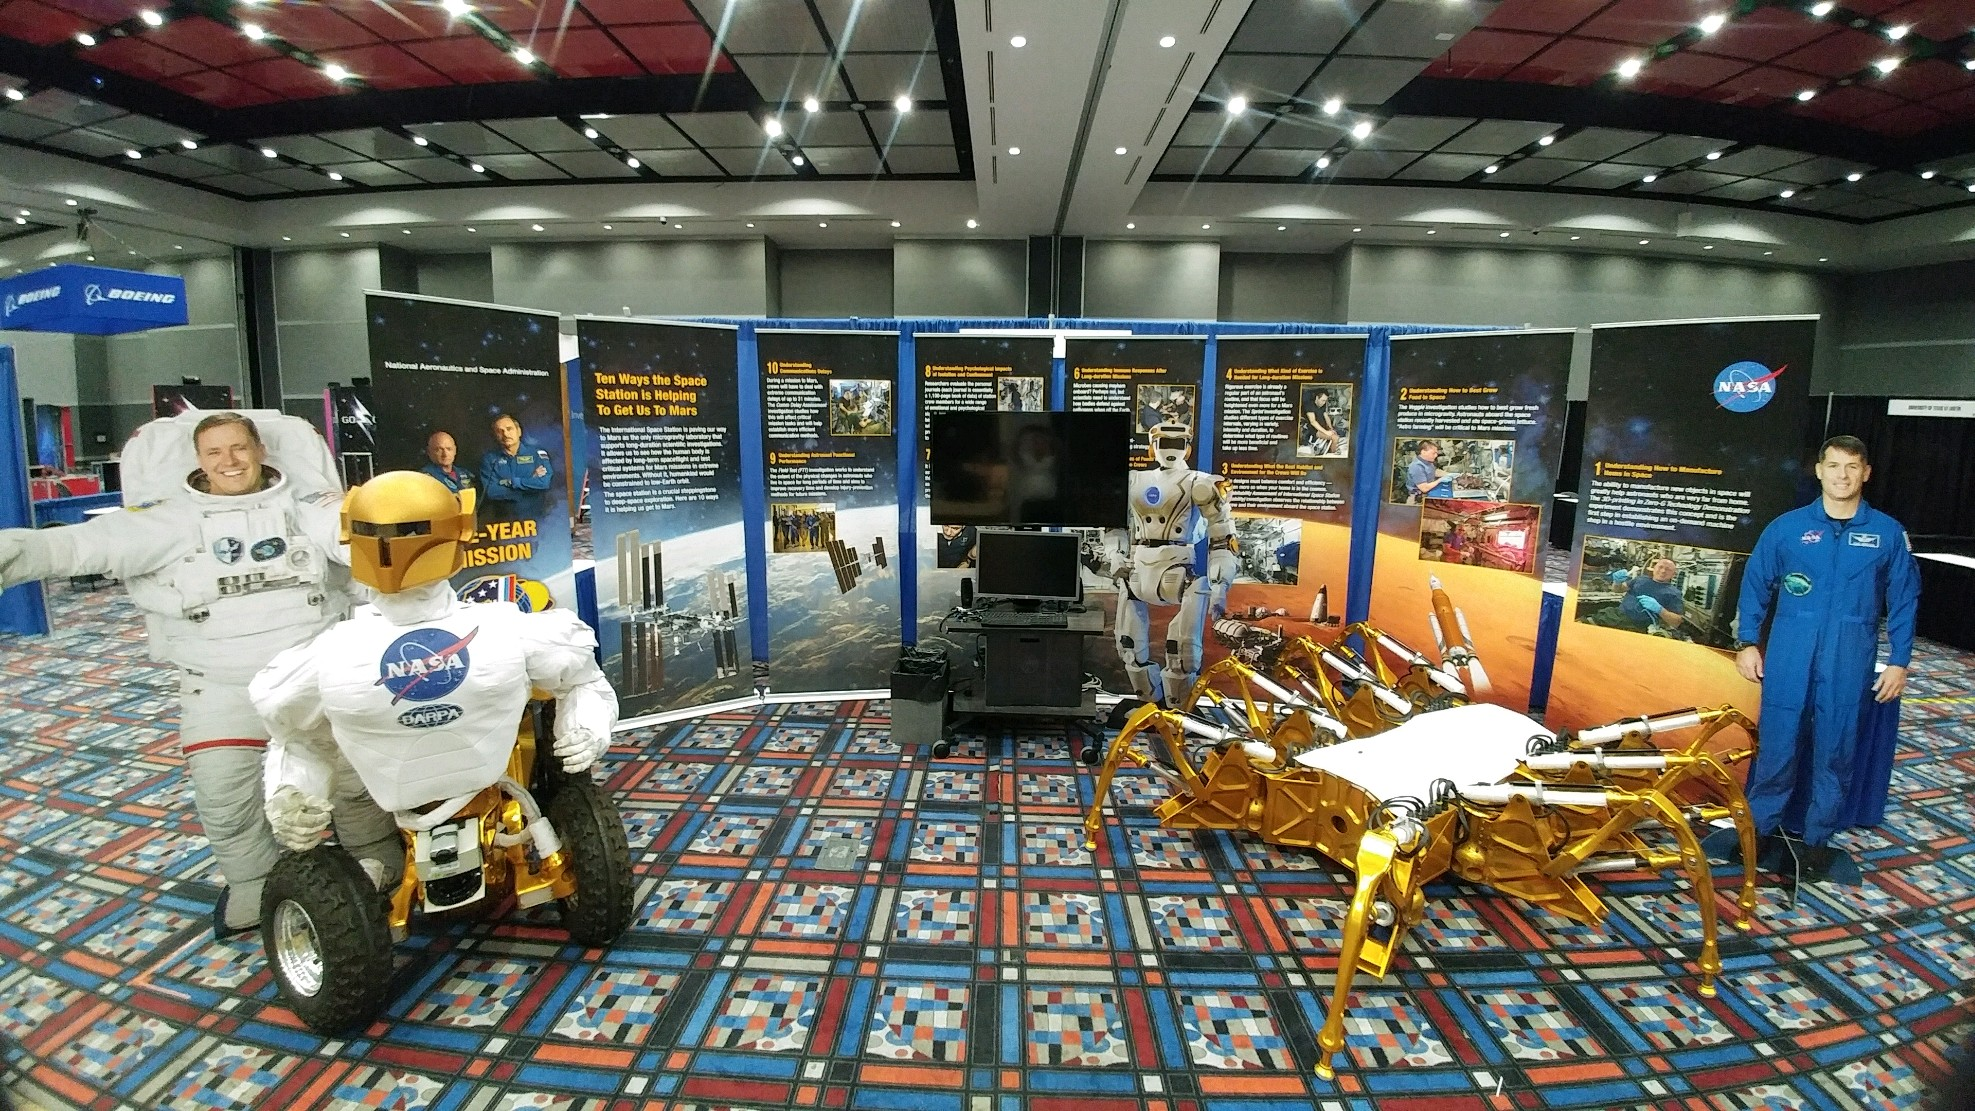 NASA Spidernaut and Centaur exhibit at FRC Innovation Faire Houston, TX